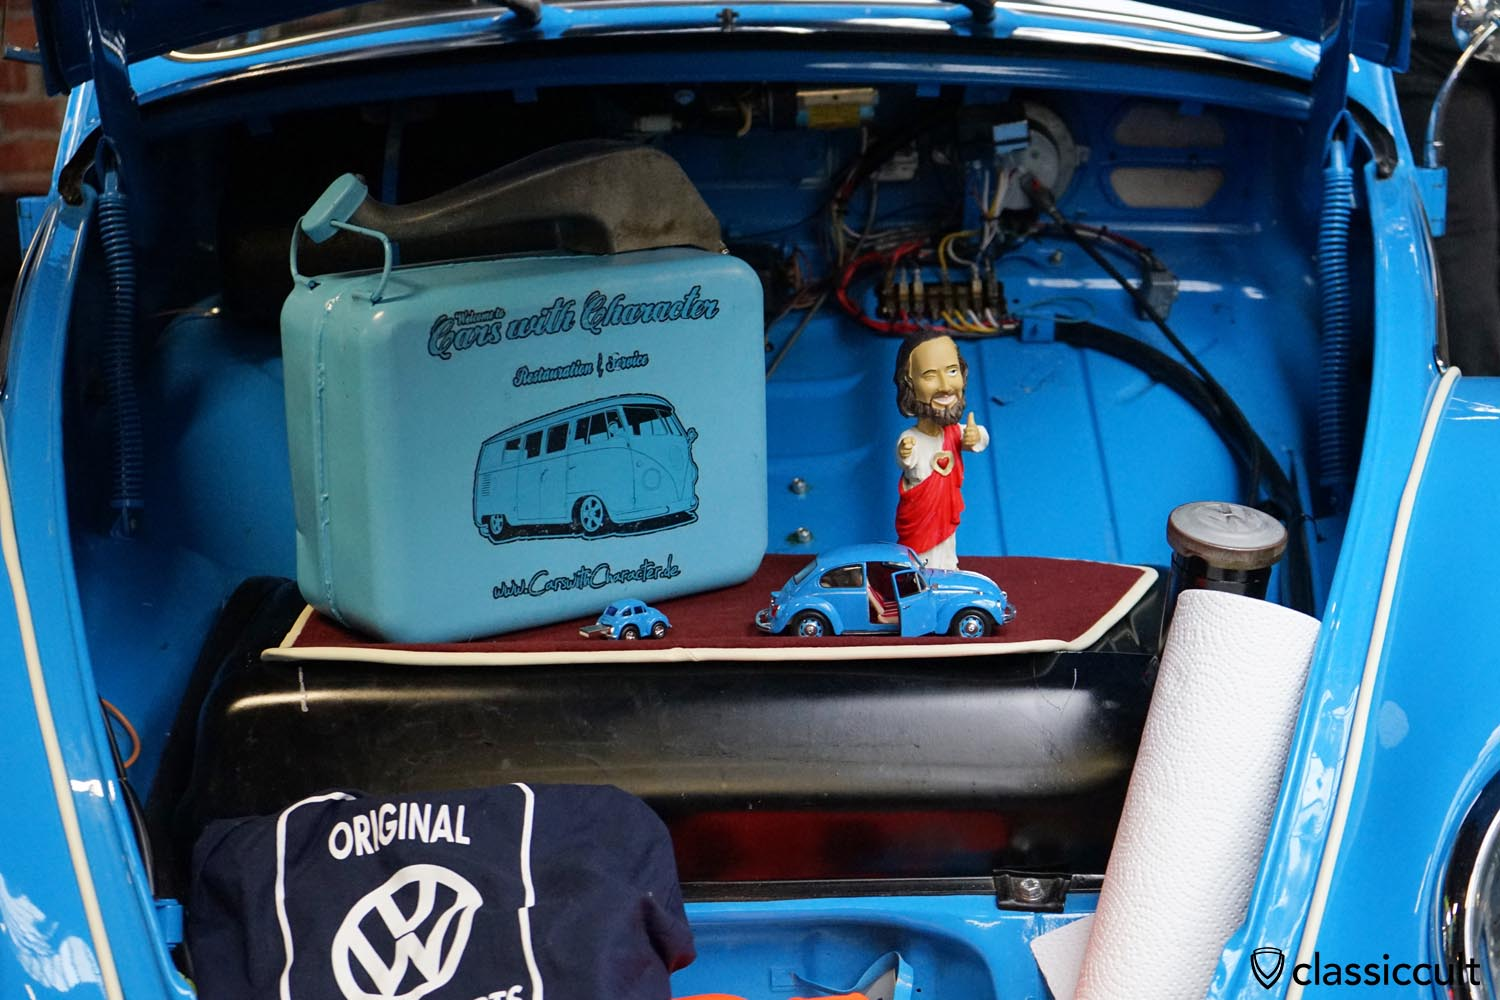 VW Beetle trunk, cars with character Restoration and Service